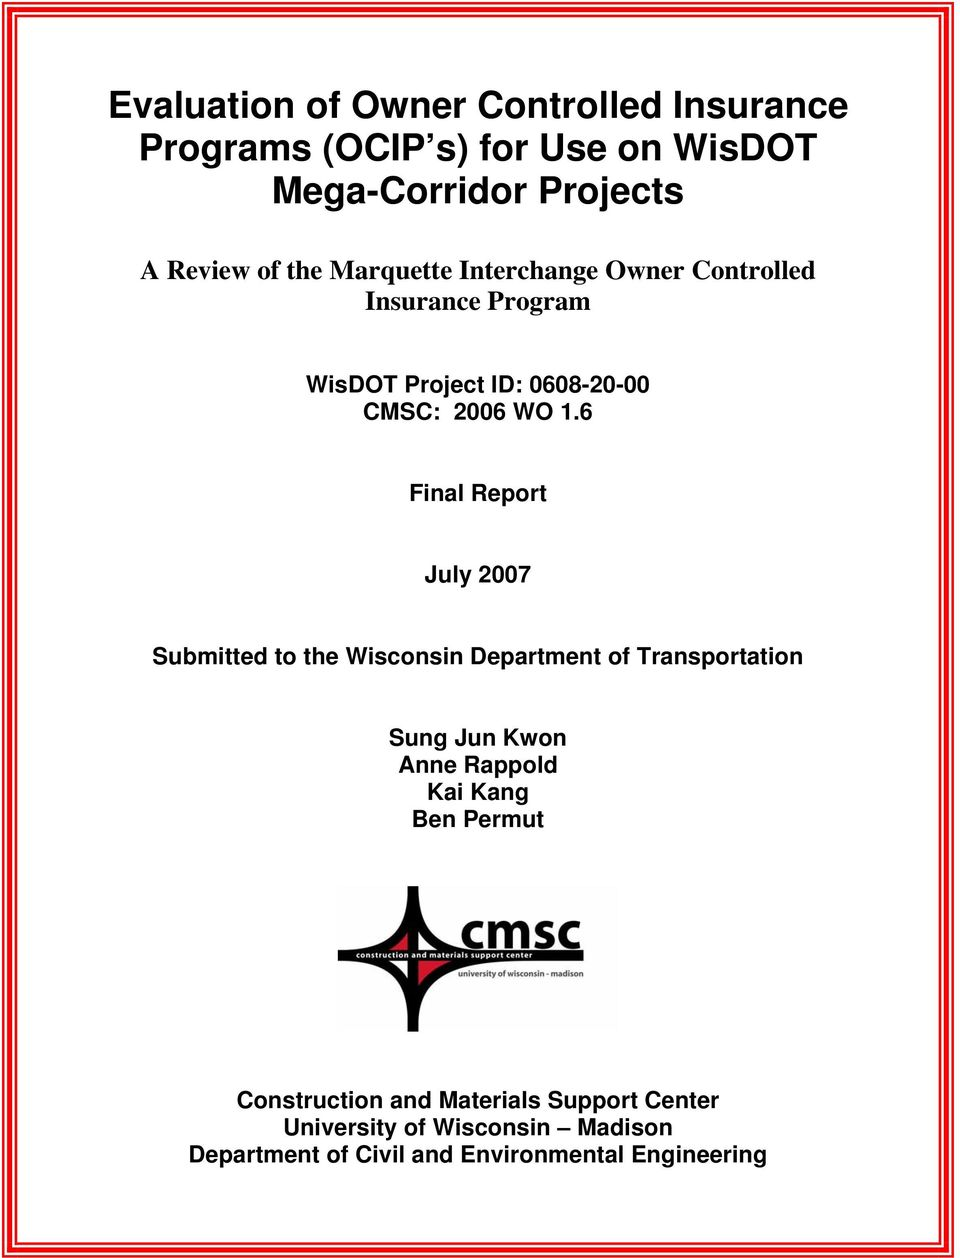 6 Final Report July 2007 Submitted to the Wisconsin Department of Transportation Sung Jun Kwon Anne Rappold Kai Kang